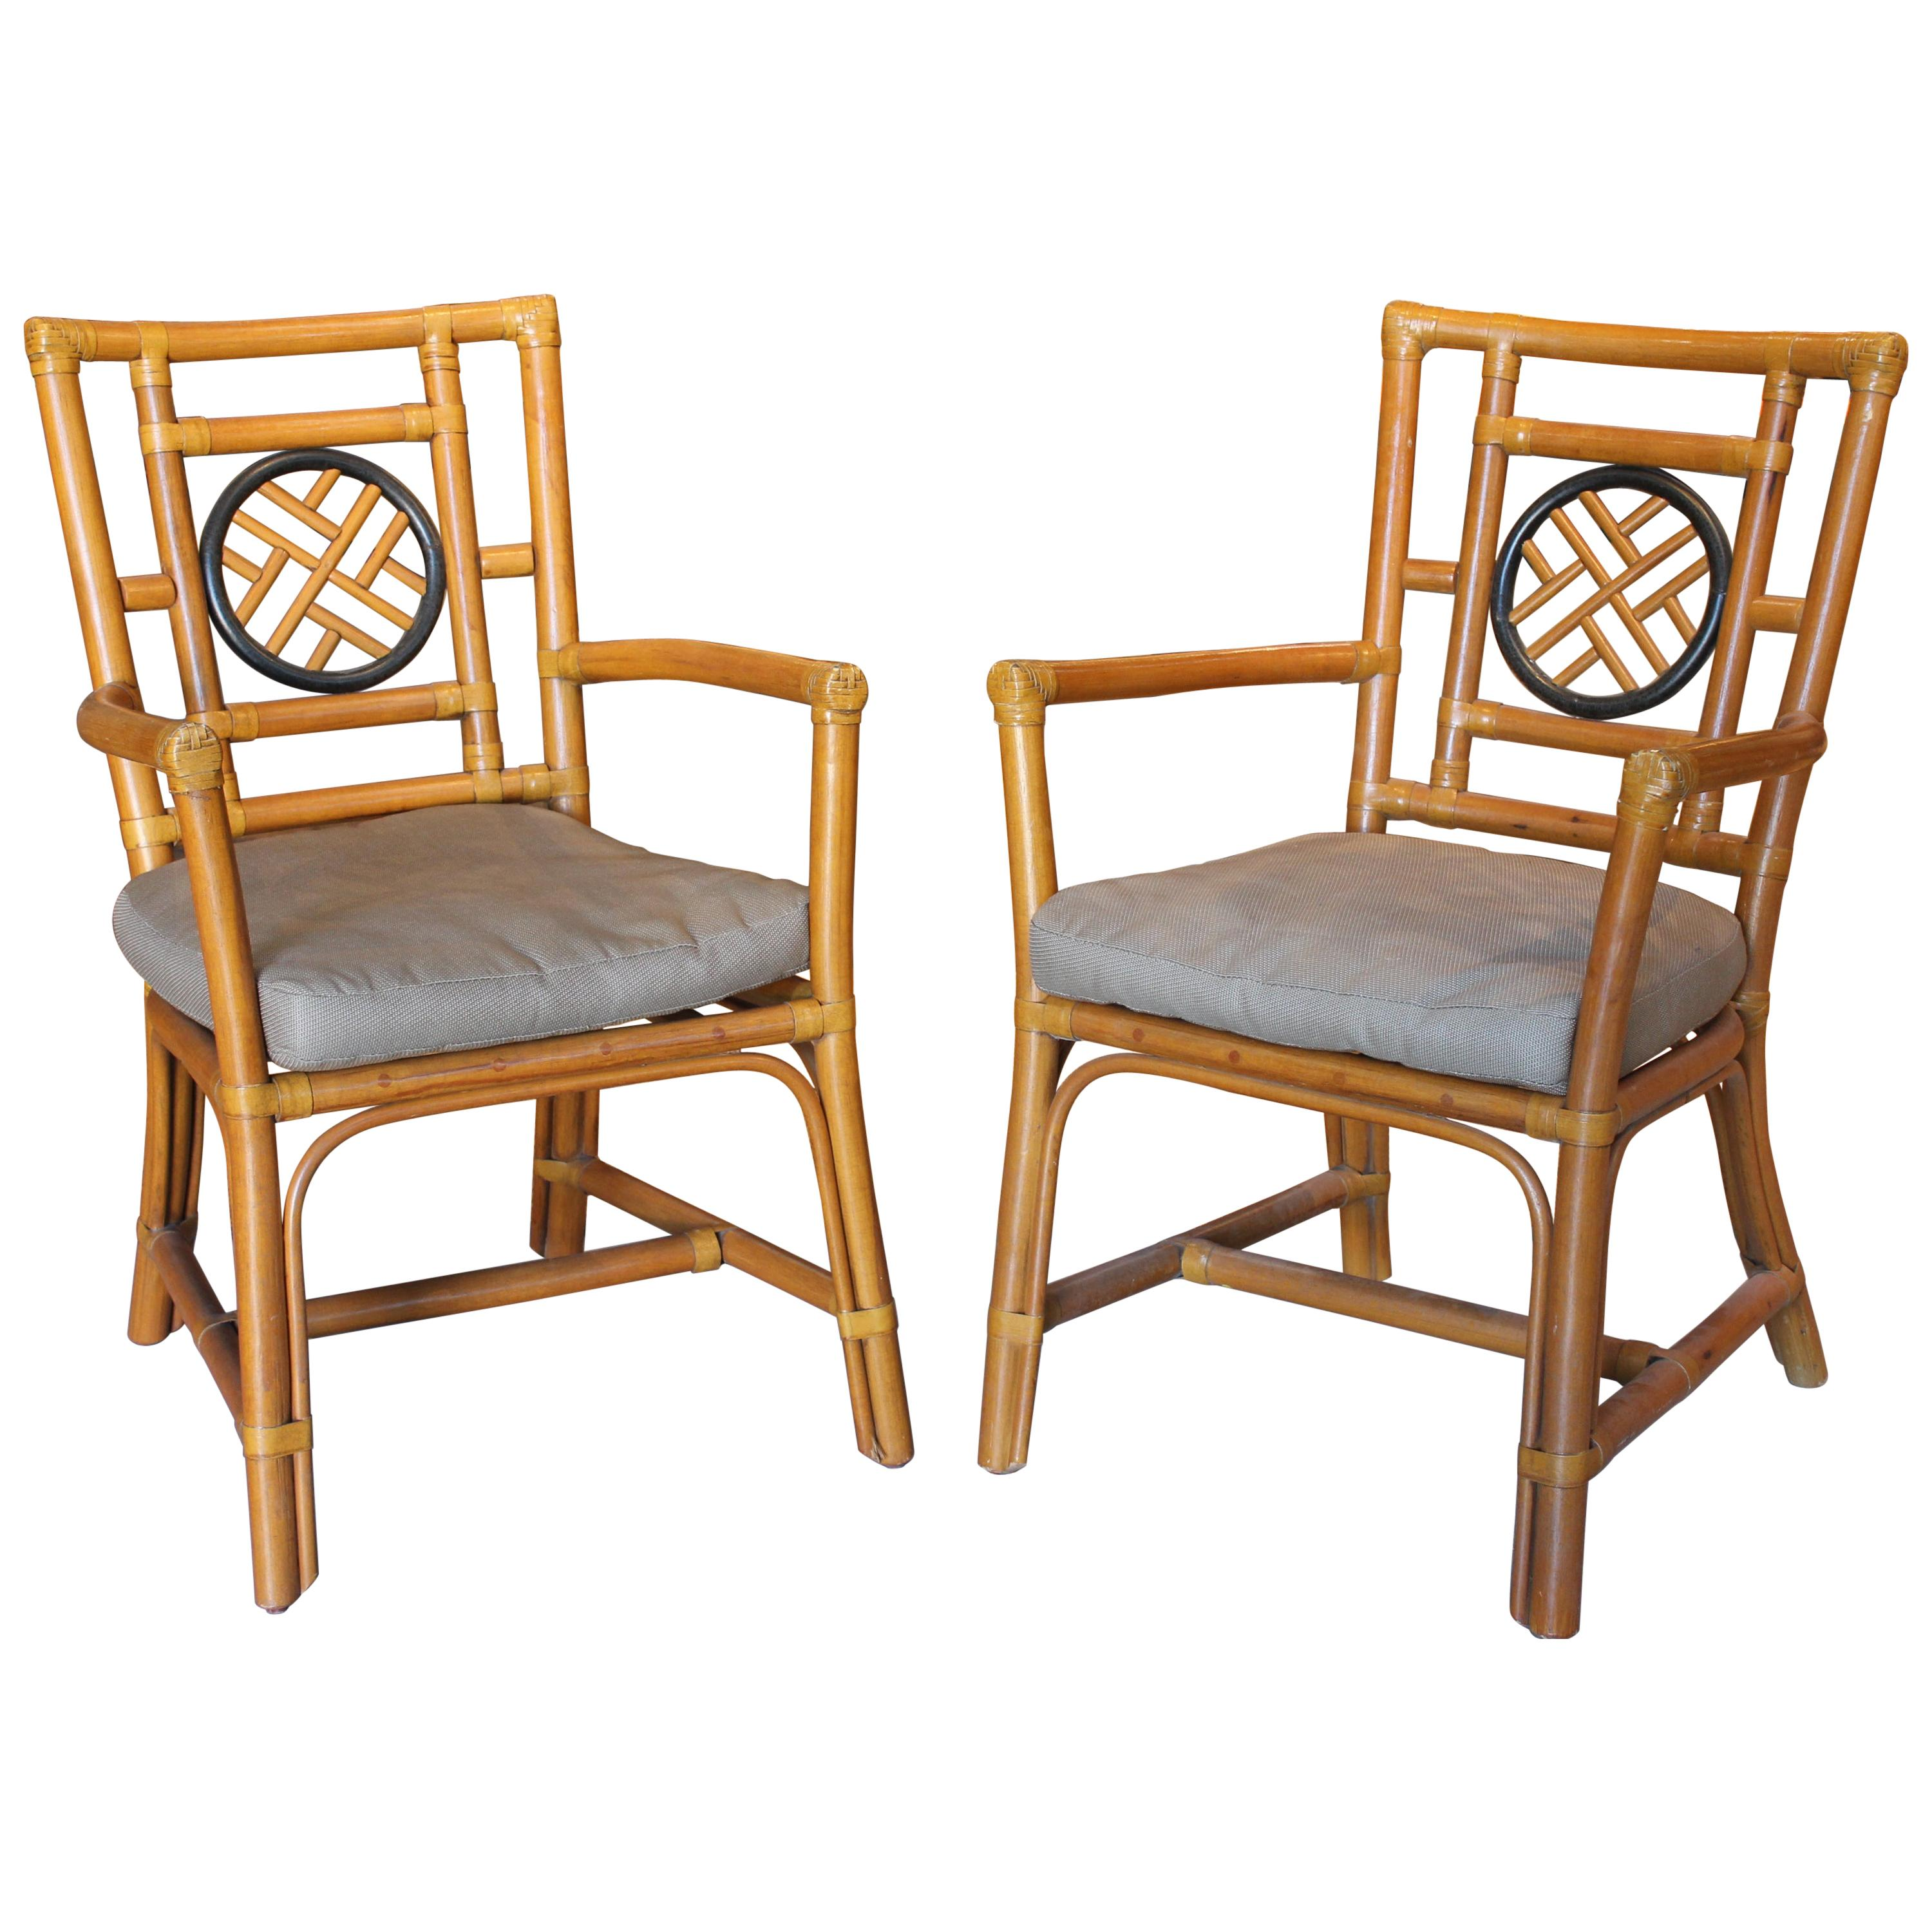 1980s Pair of Oriental Style Bamboo Chairs